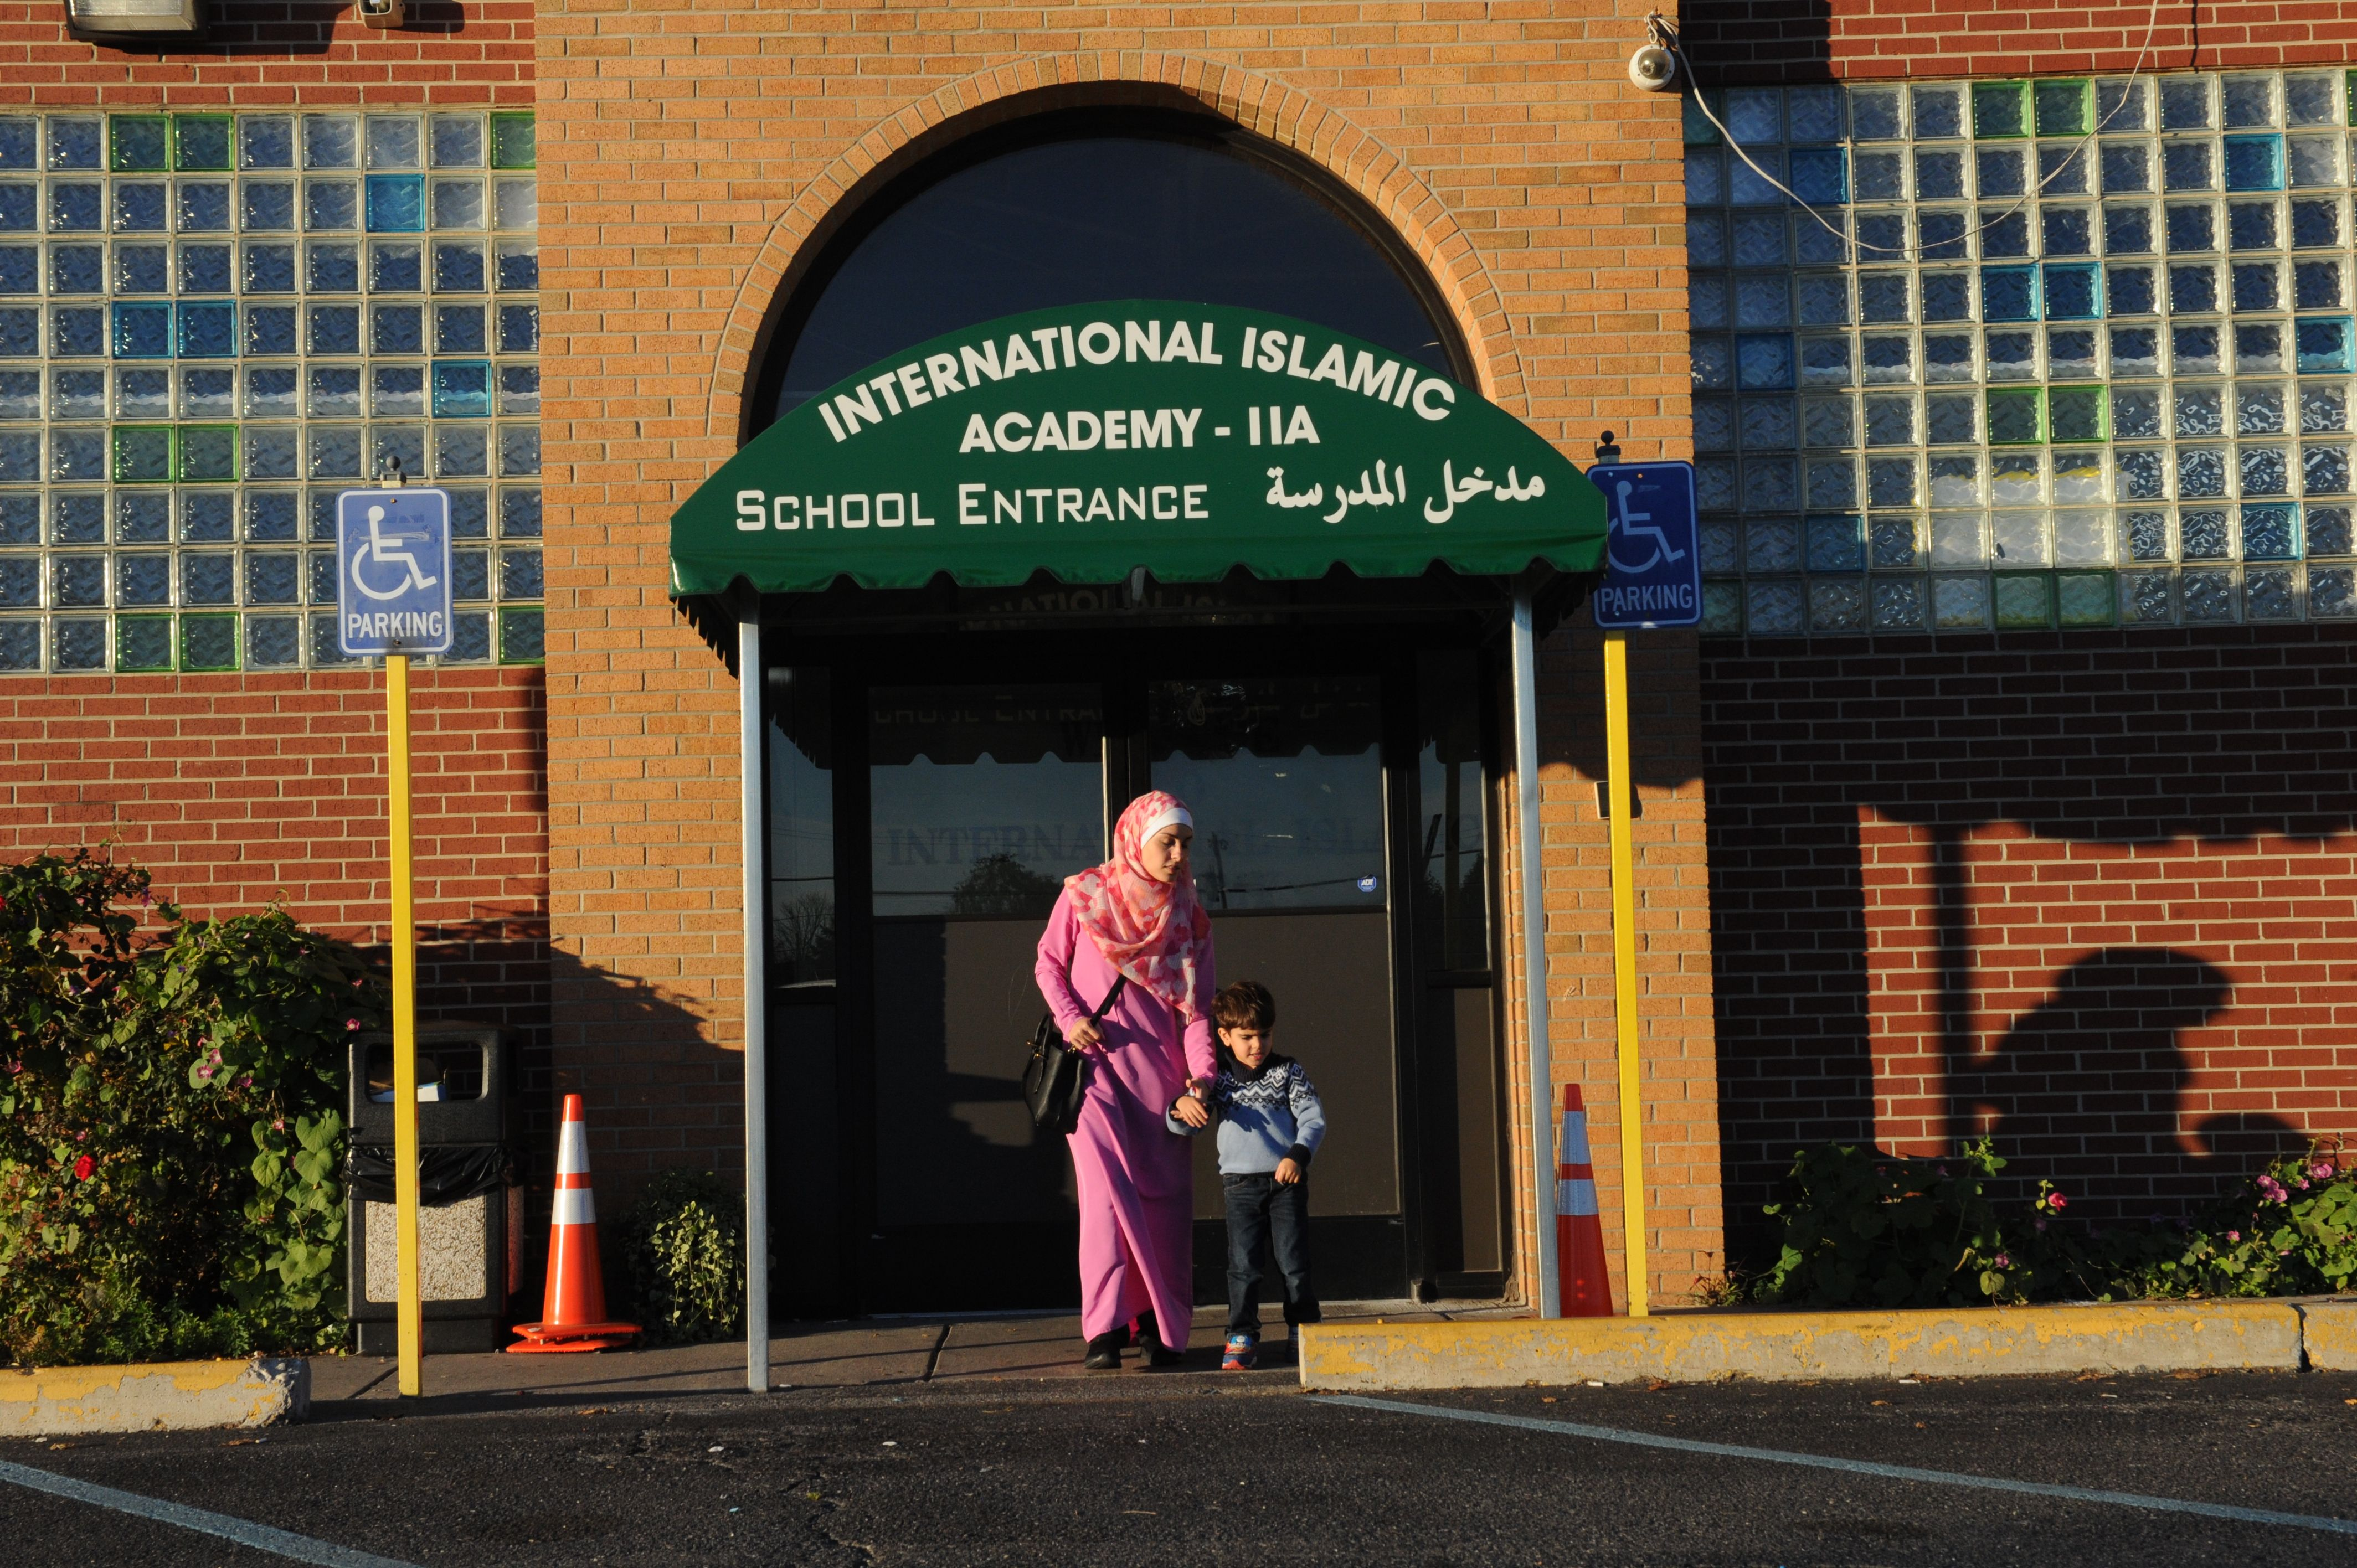 Amani Ramouni, 27, leaves the International Islamic Academy with her son Shadi, 3, in Detroit on November 9, 2016.